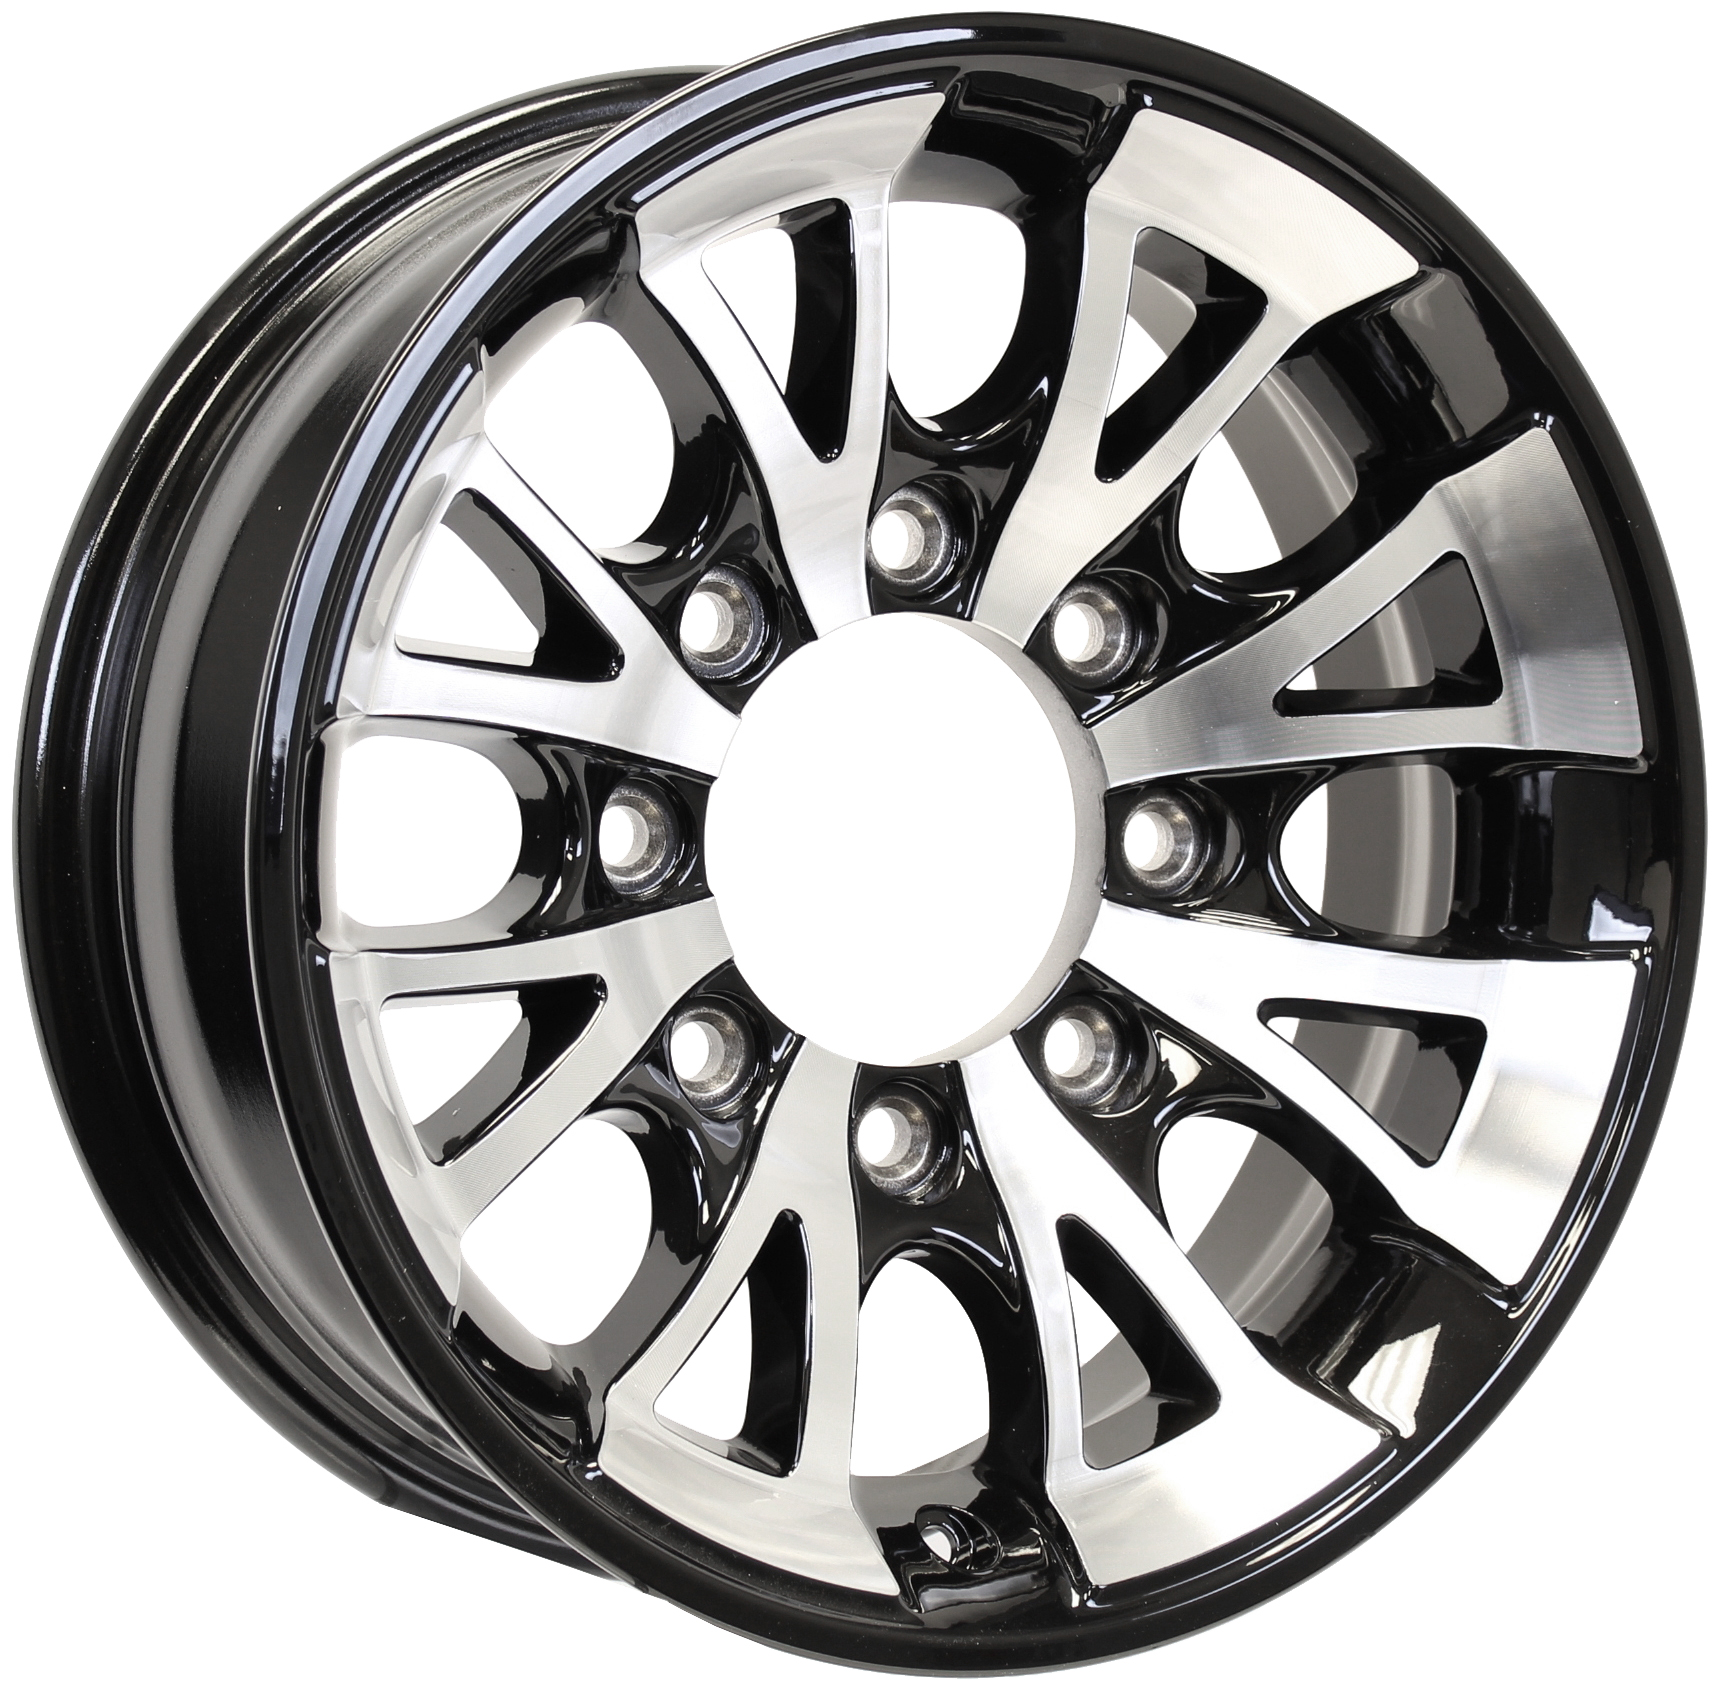 A1411 16x6; 8-Lug Black Aluminum Trailer Wheel Image